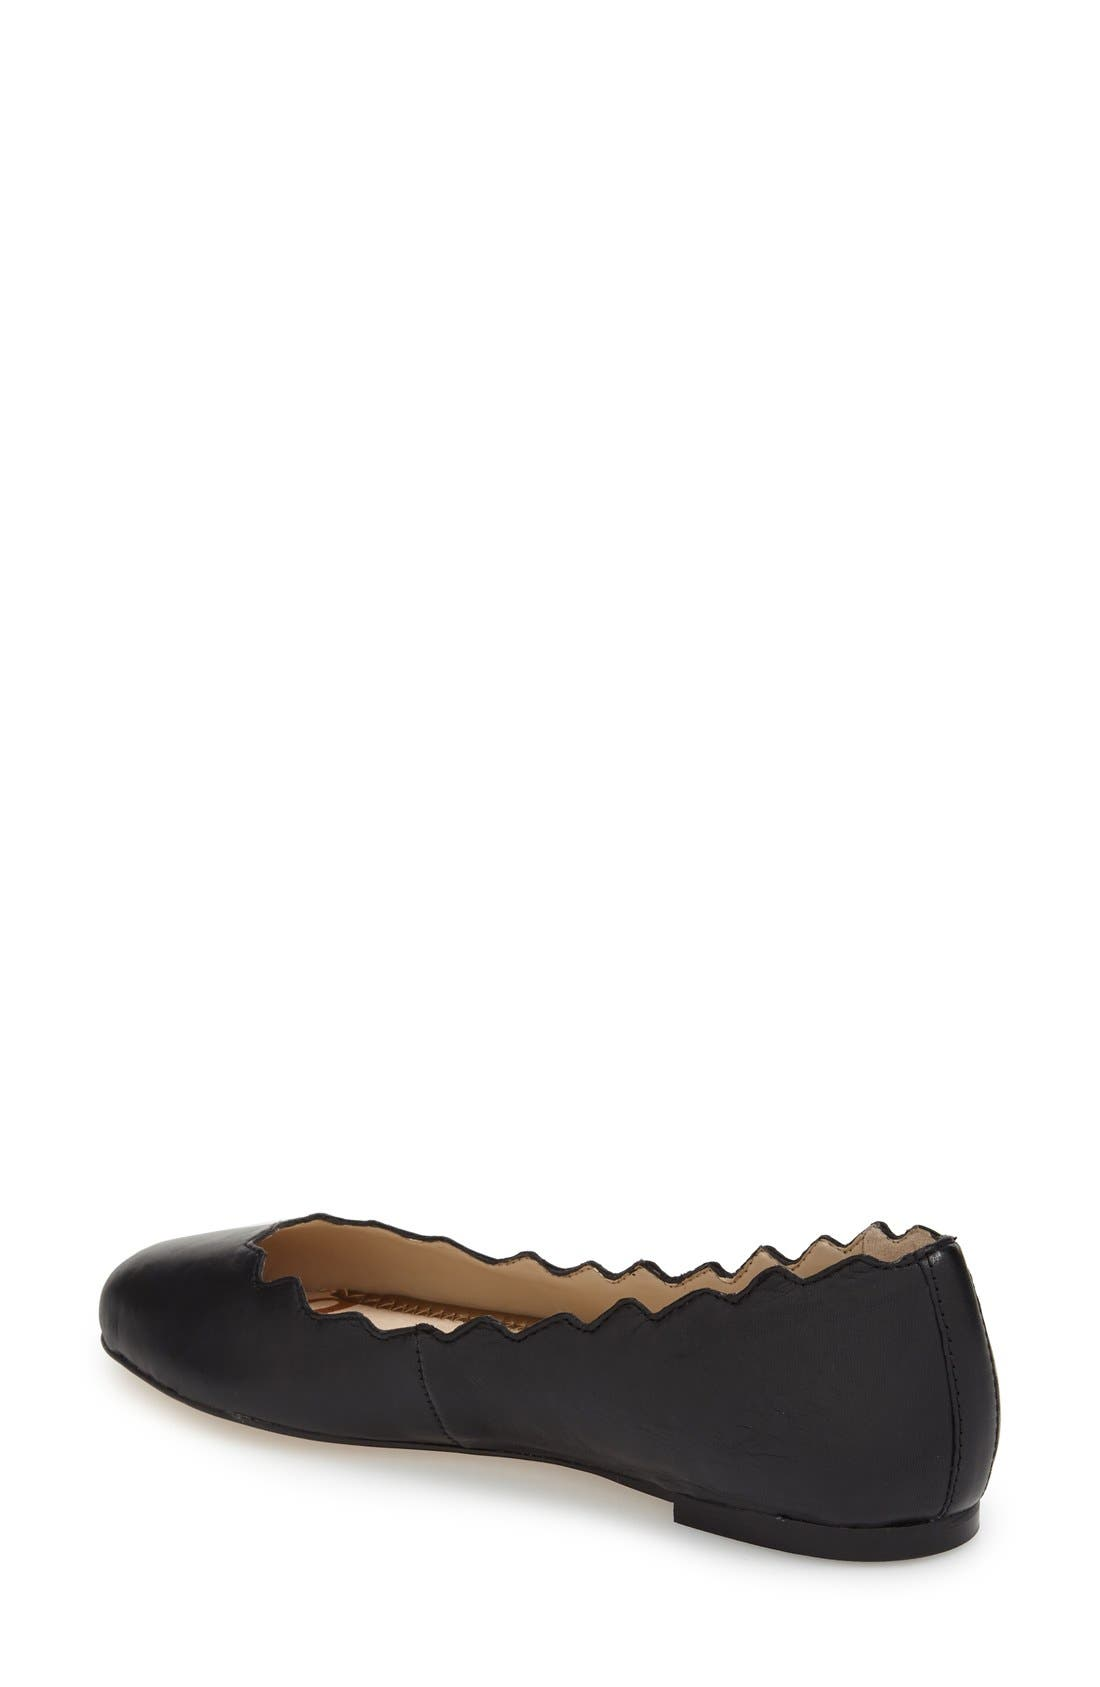 Alternate Image 2  - Sam Edelman 'Francis' Flat (Women)